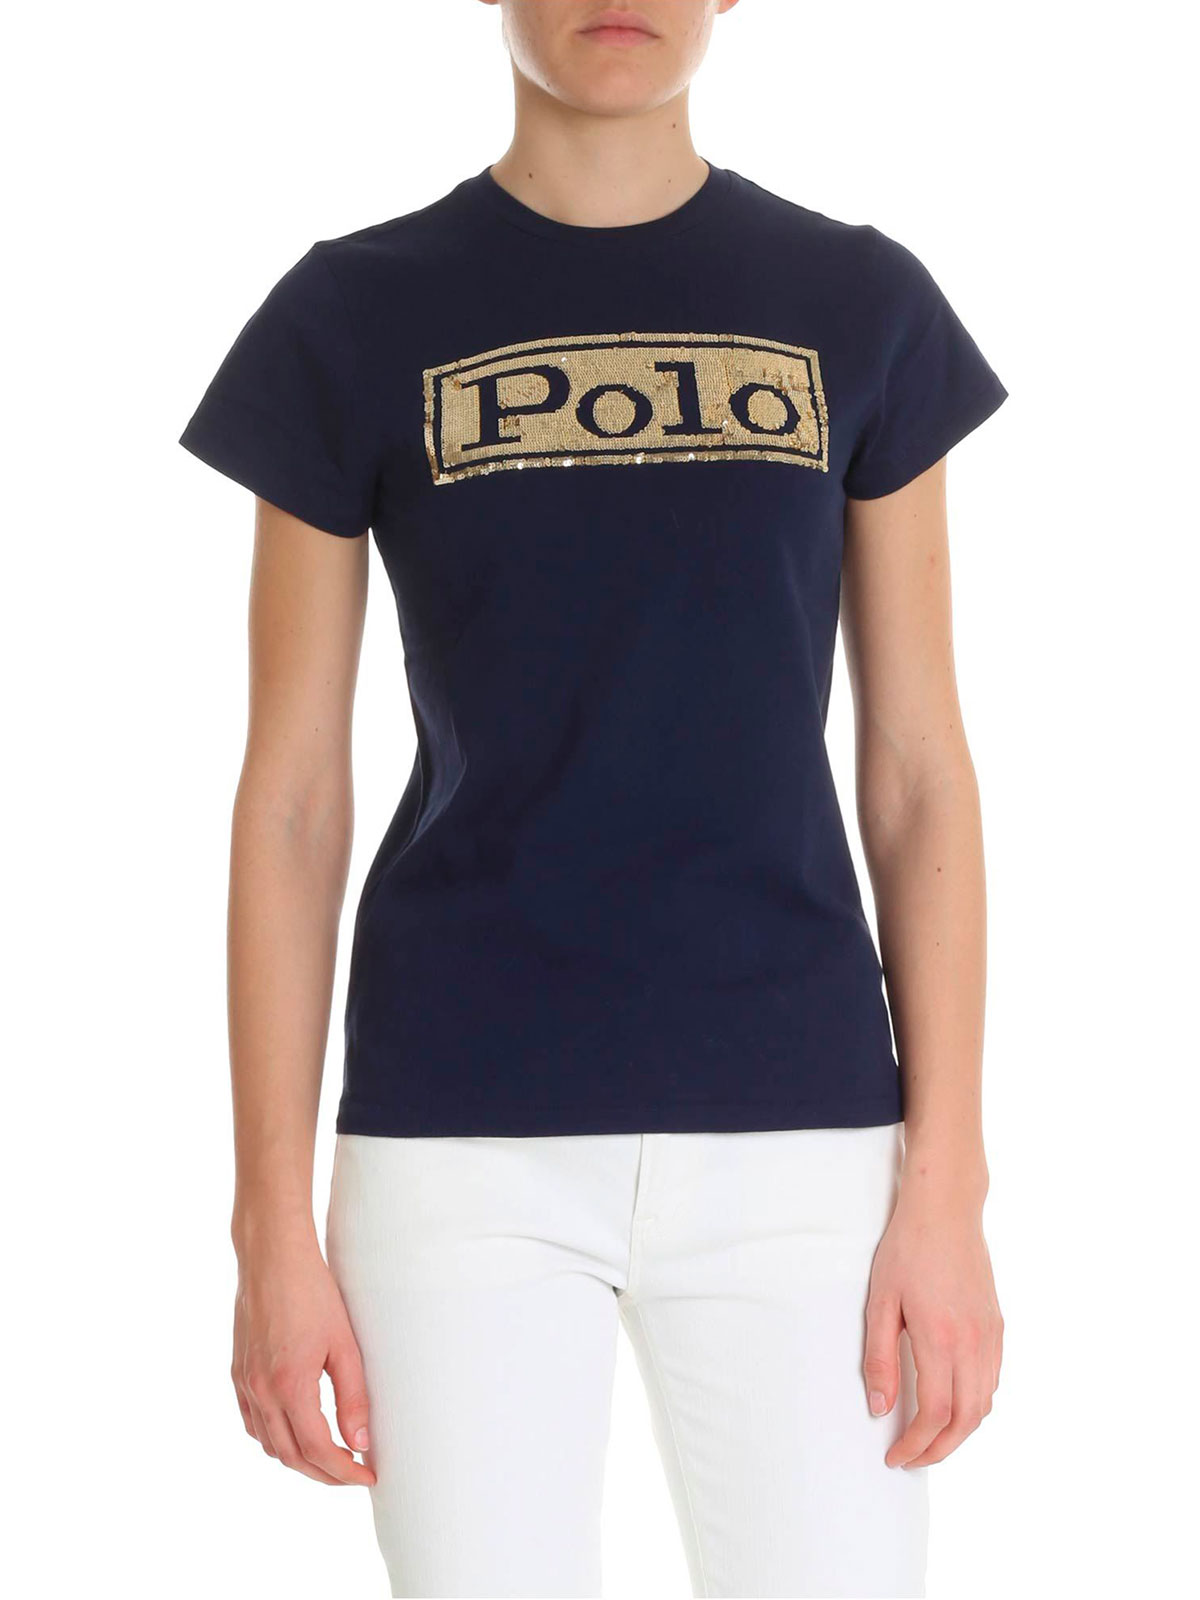 Immagine di POLO RALPH LAUREN | T-SHIRT POLO